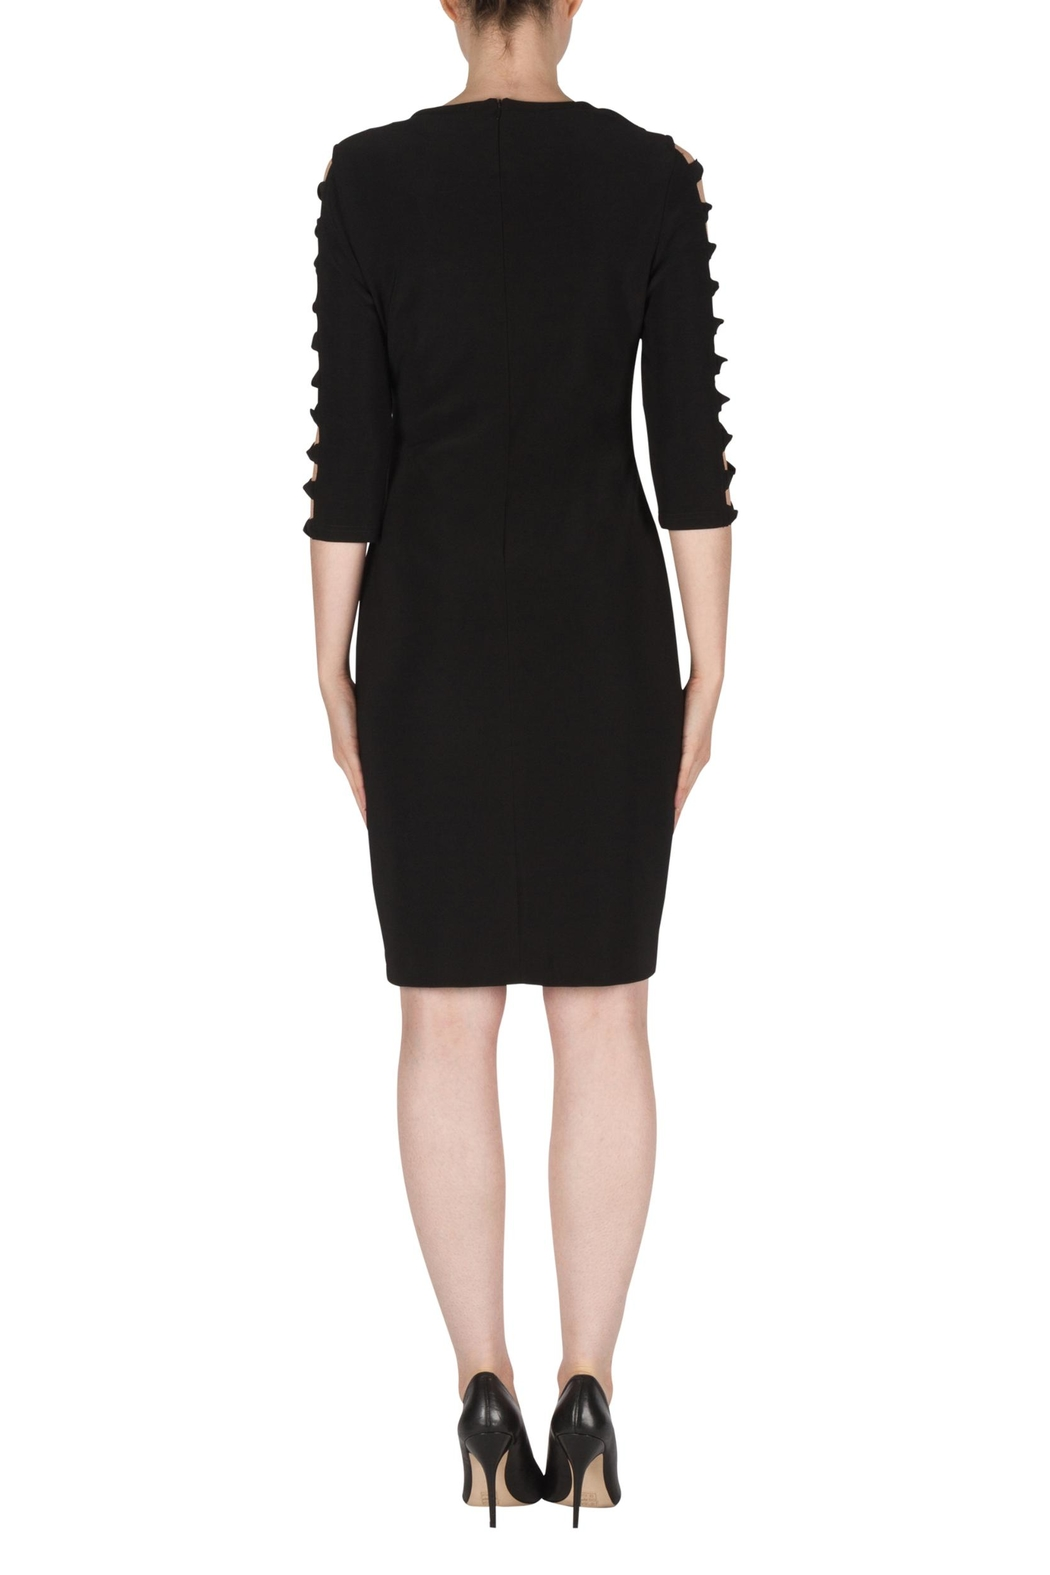 Joseph Ribkoff Black Cut-Outs Dress - Side Cropped Image